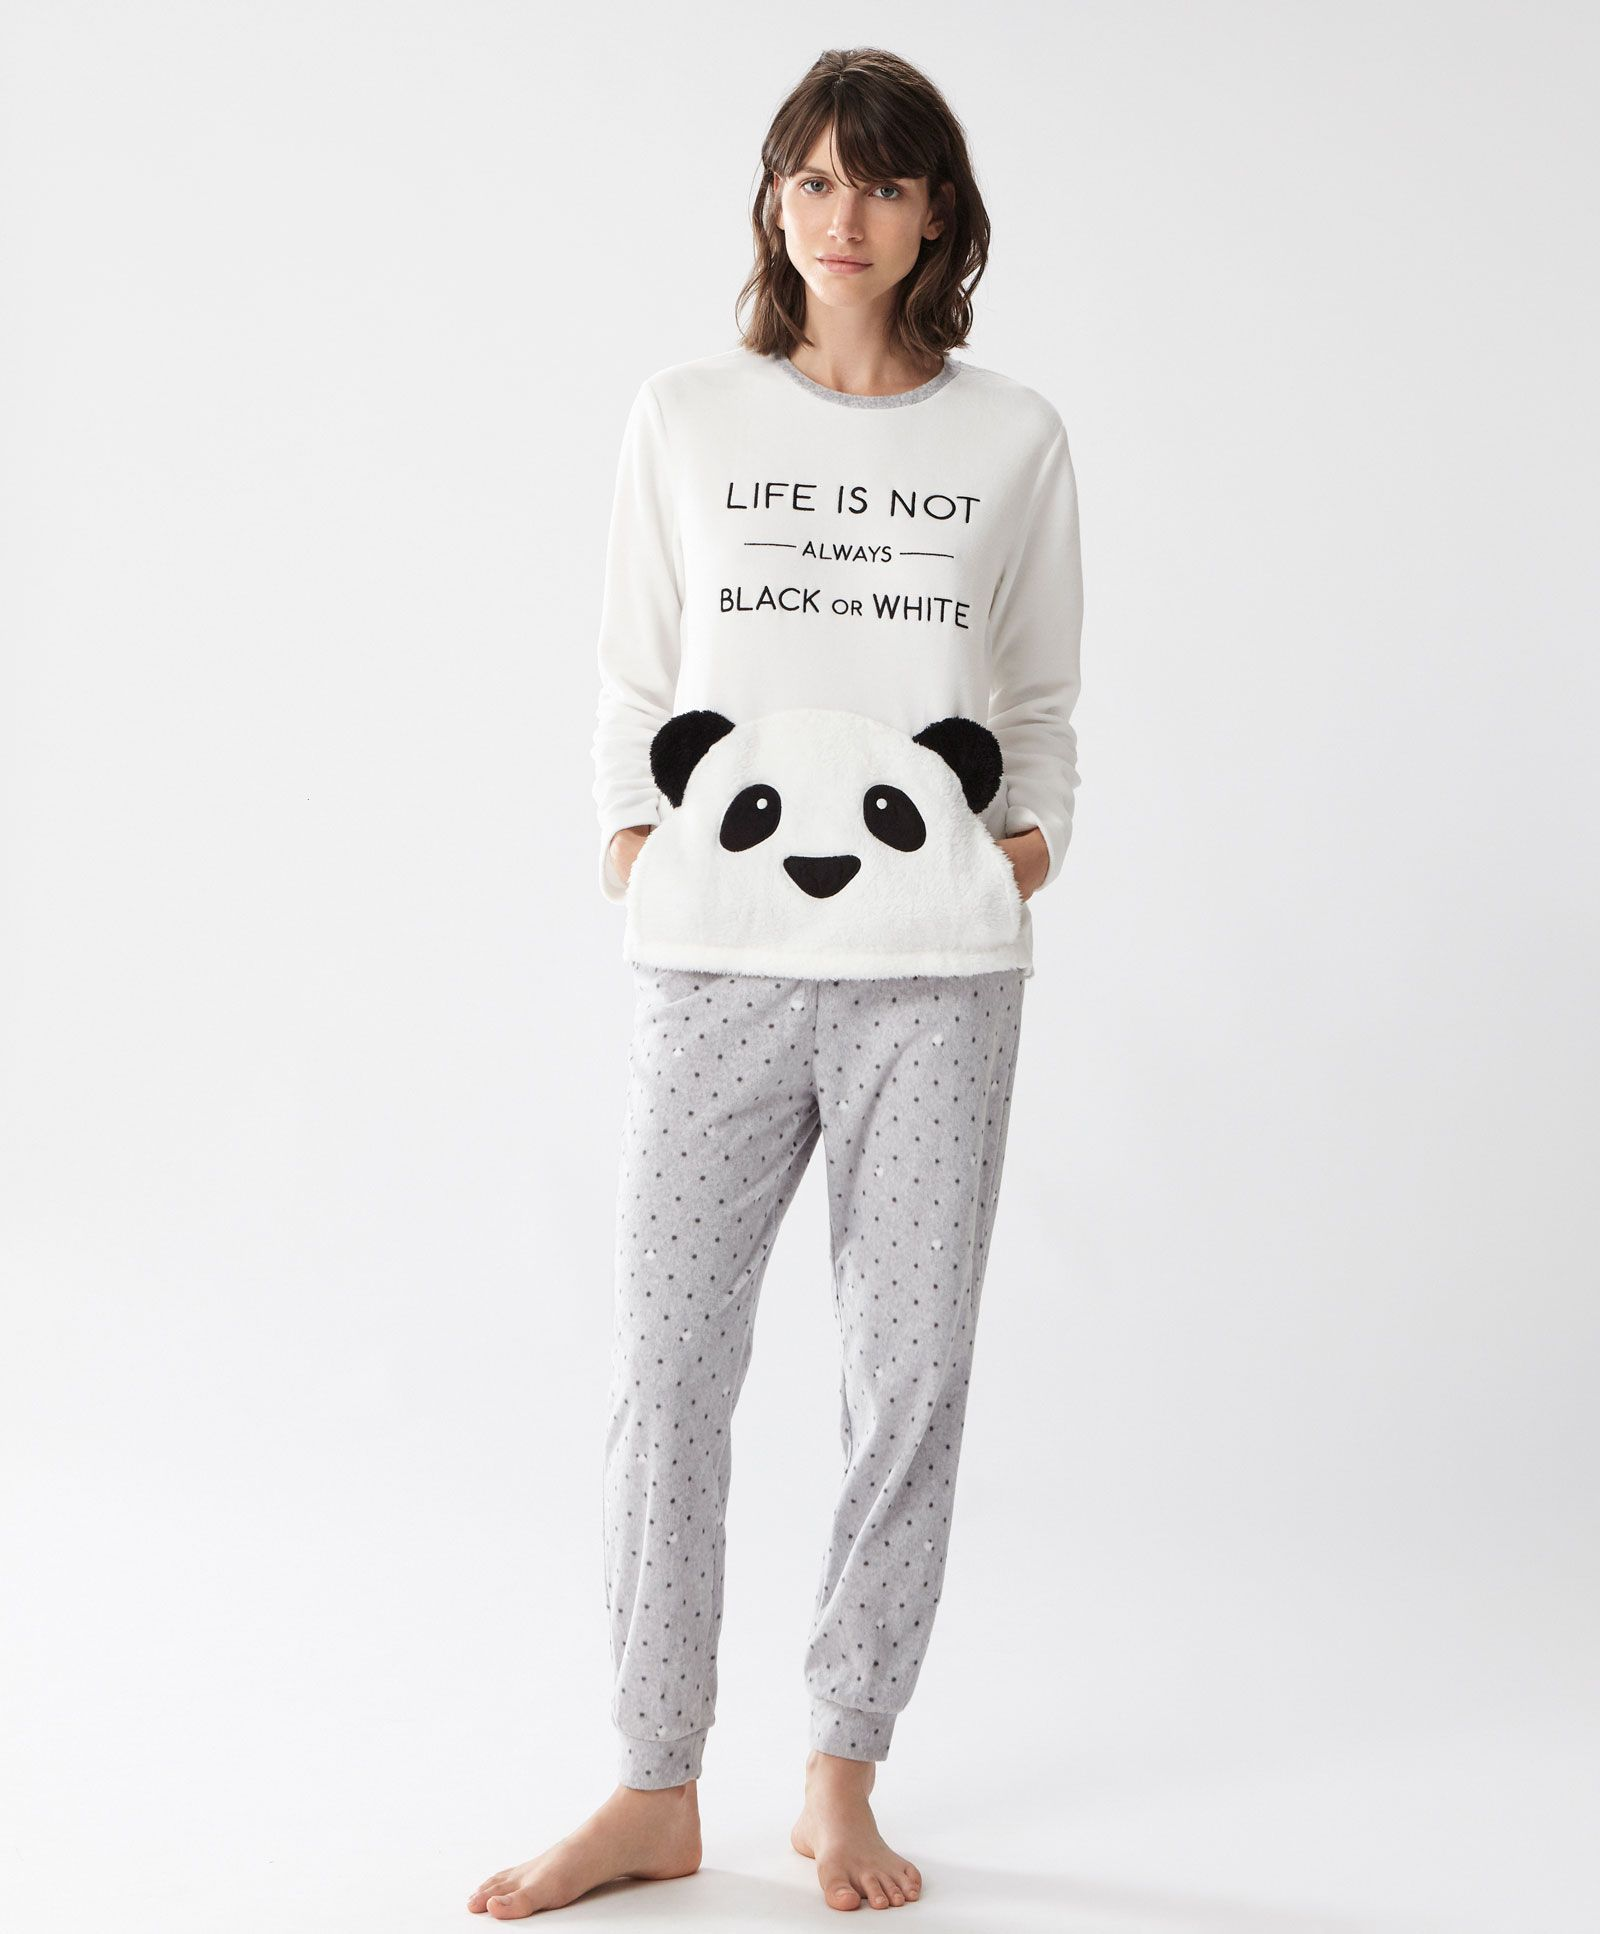 Long panda trousers, null£ - Elastic waist and cuffs. - Find more trends in women  fashion at Oysho .